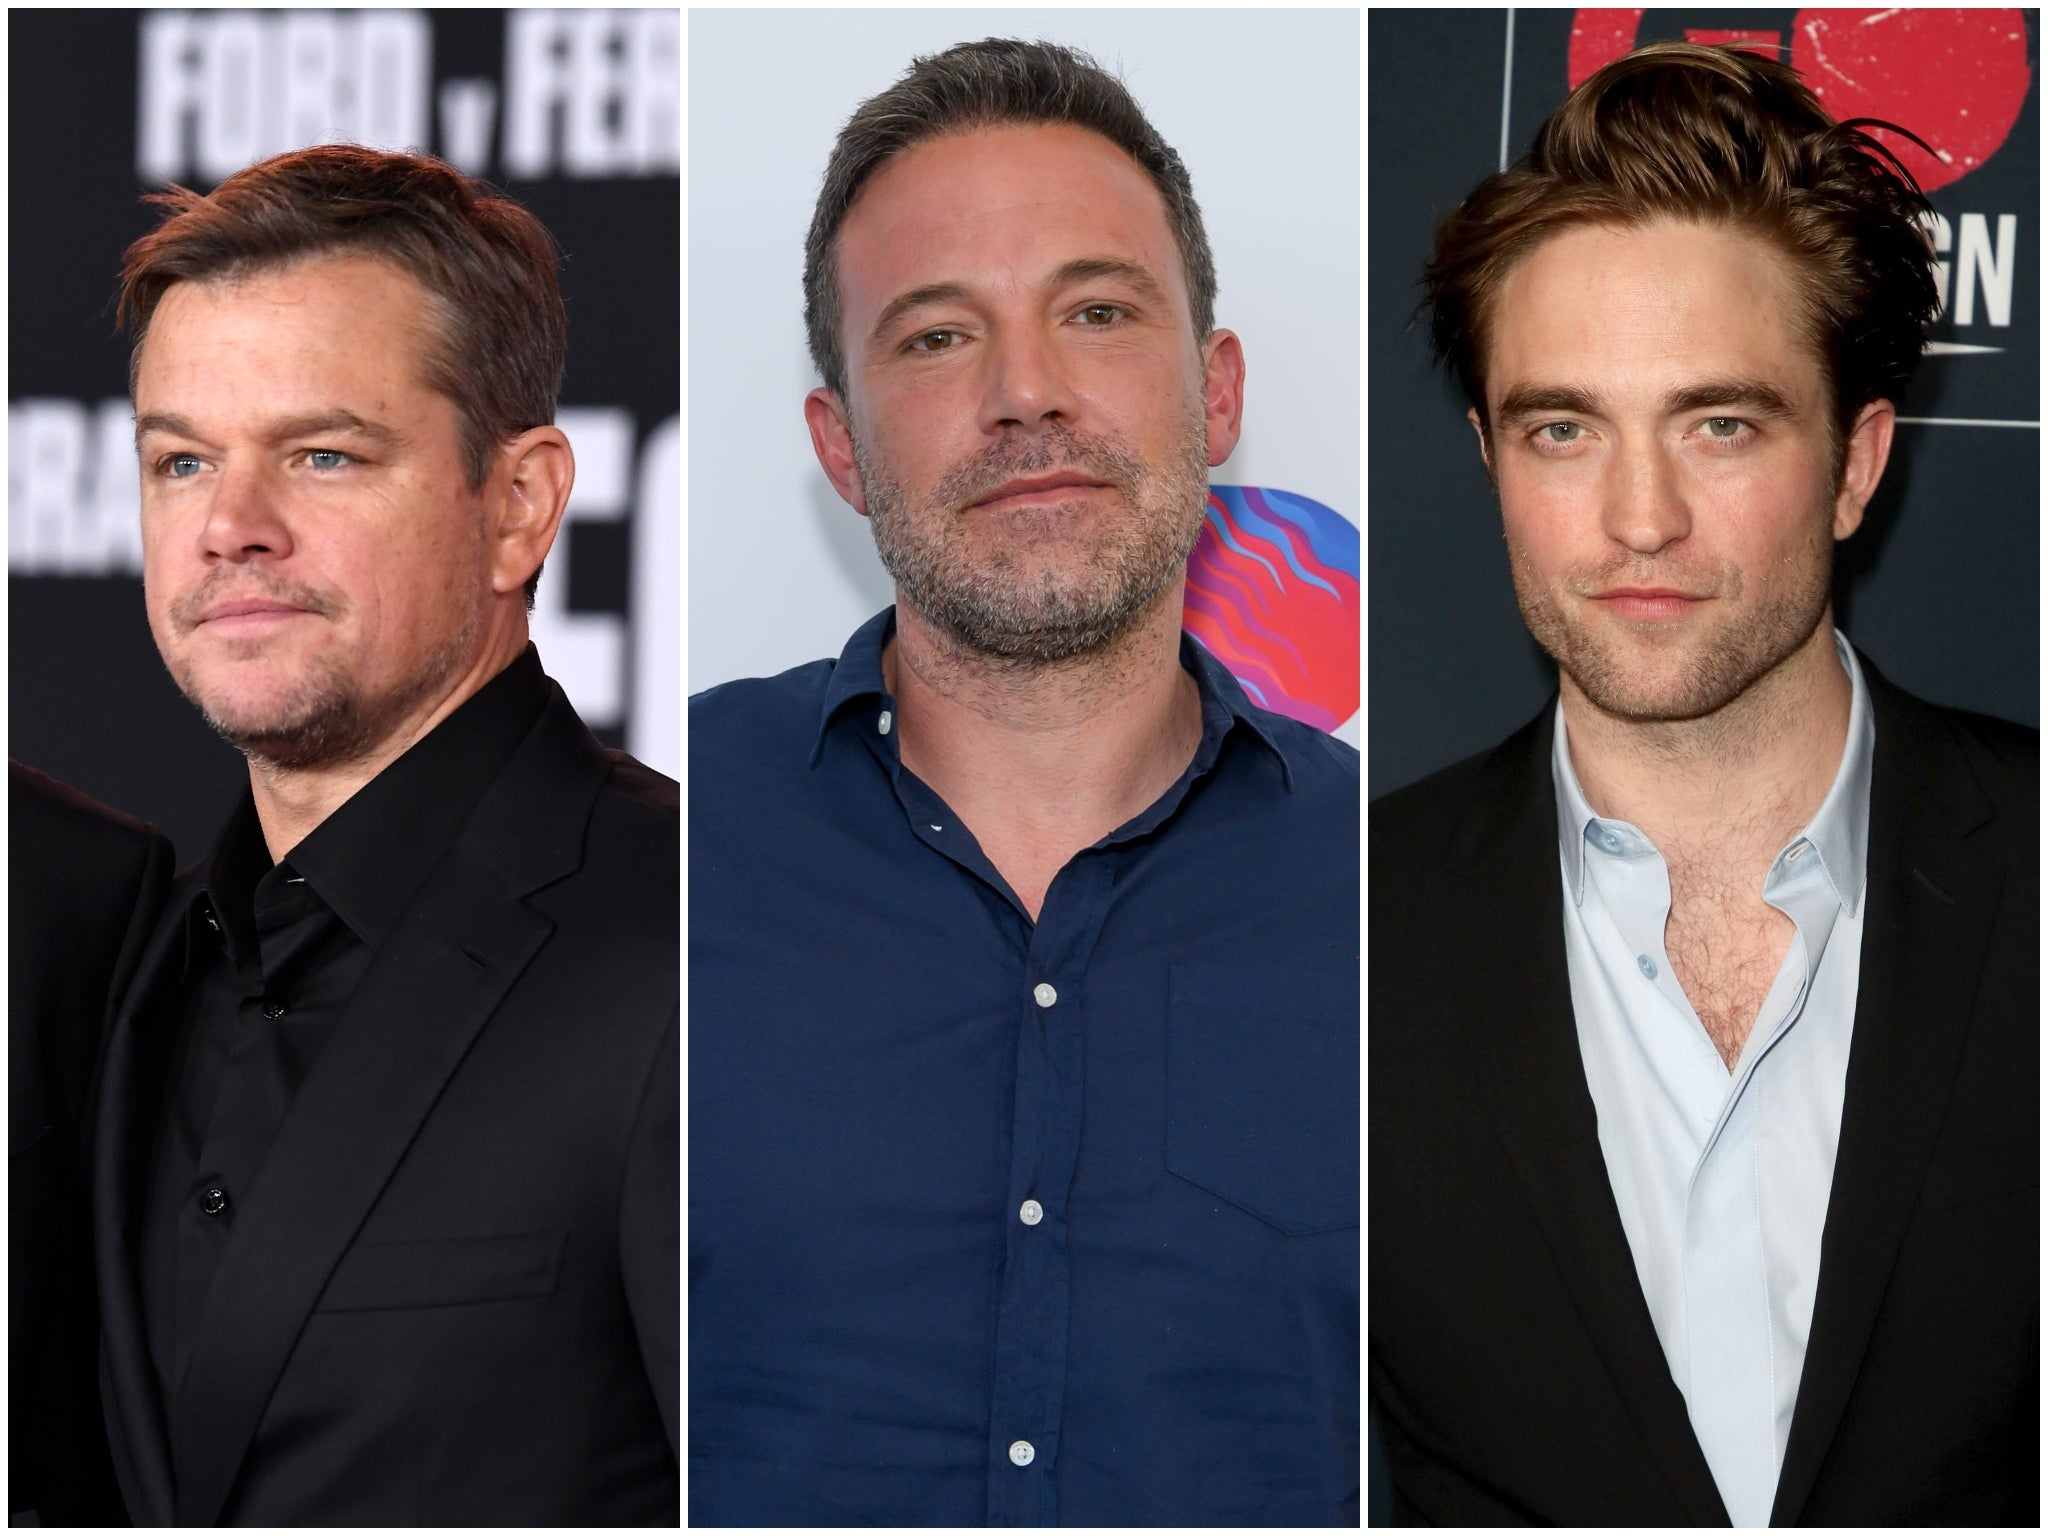 Image 'Robert Pattinson took your job': Matt Damon mocks Ben Affleck for losing Batman role